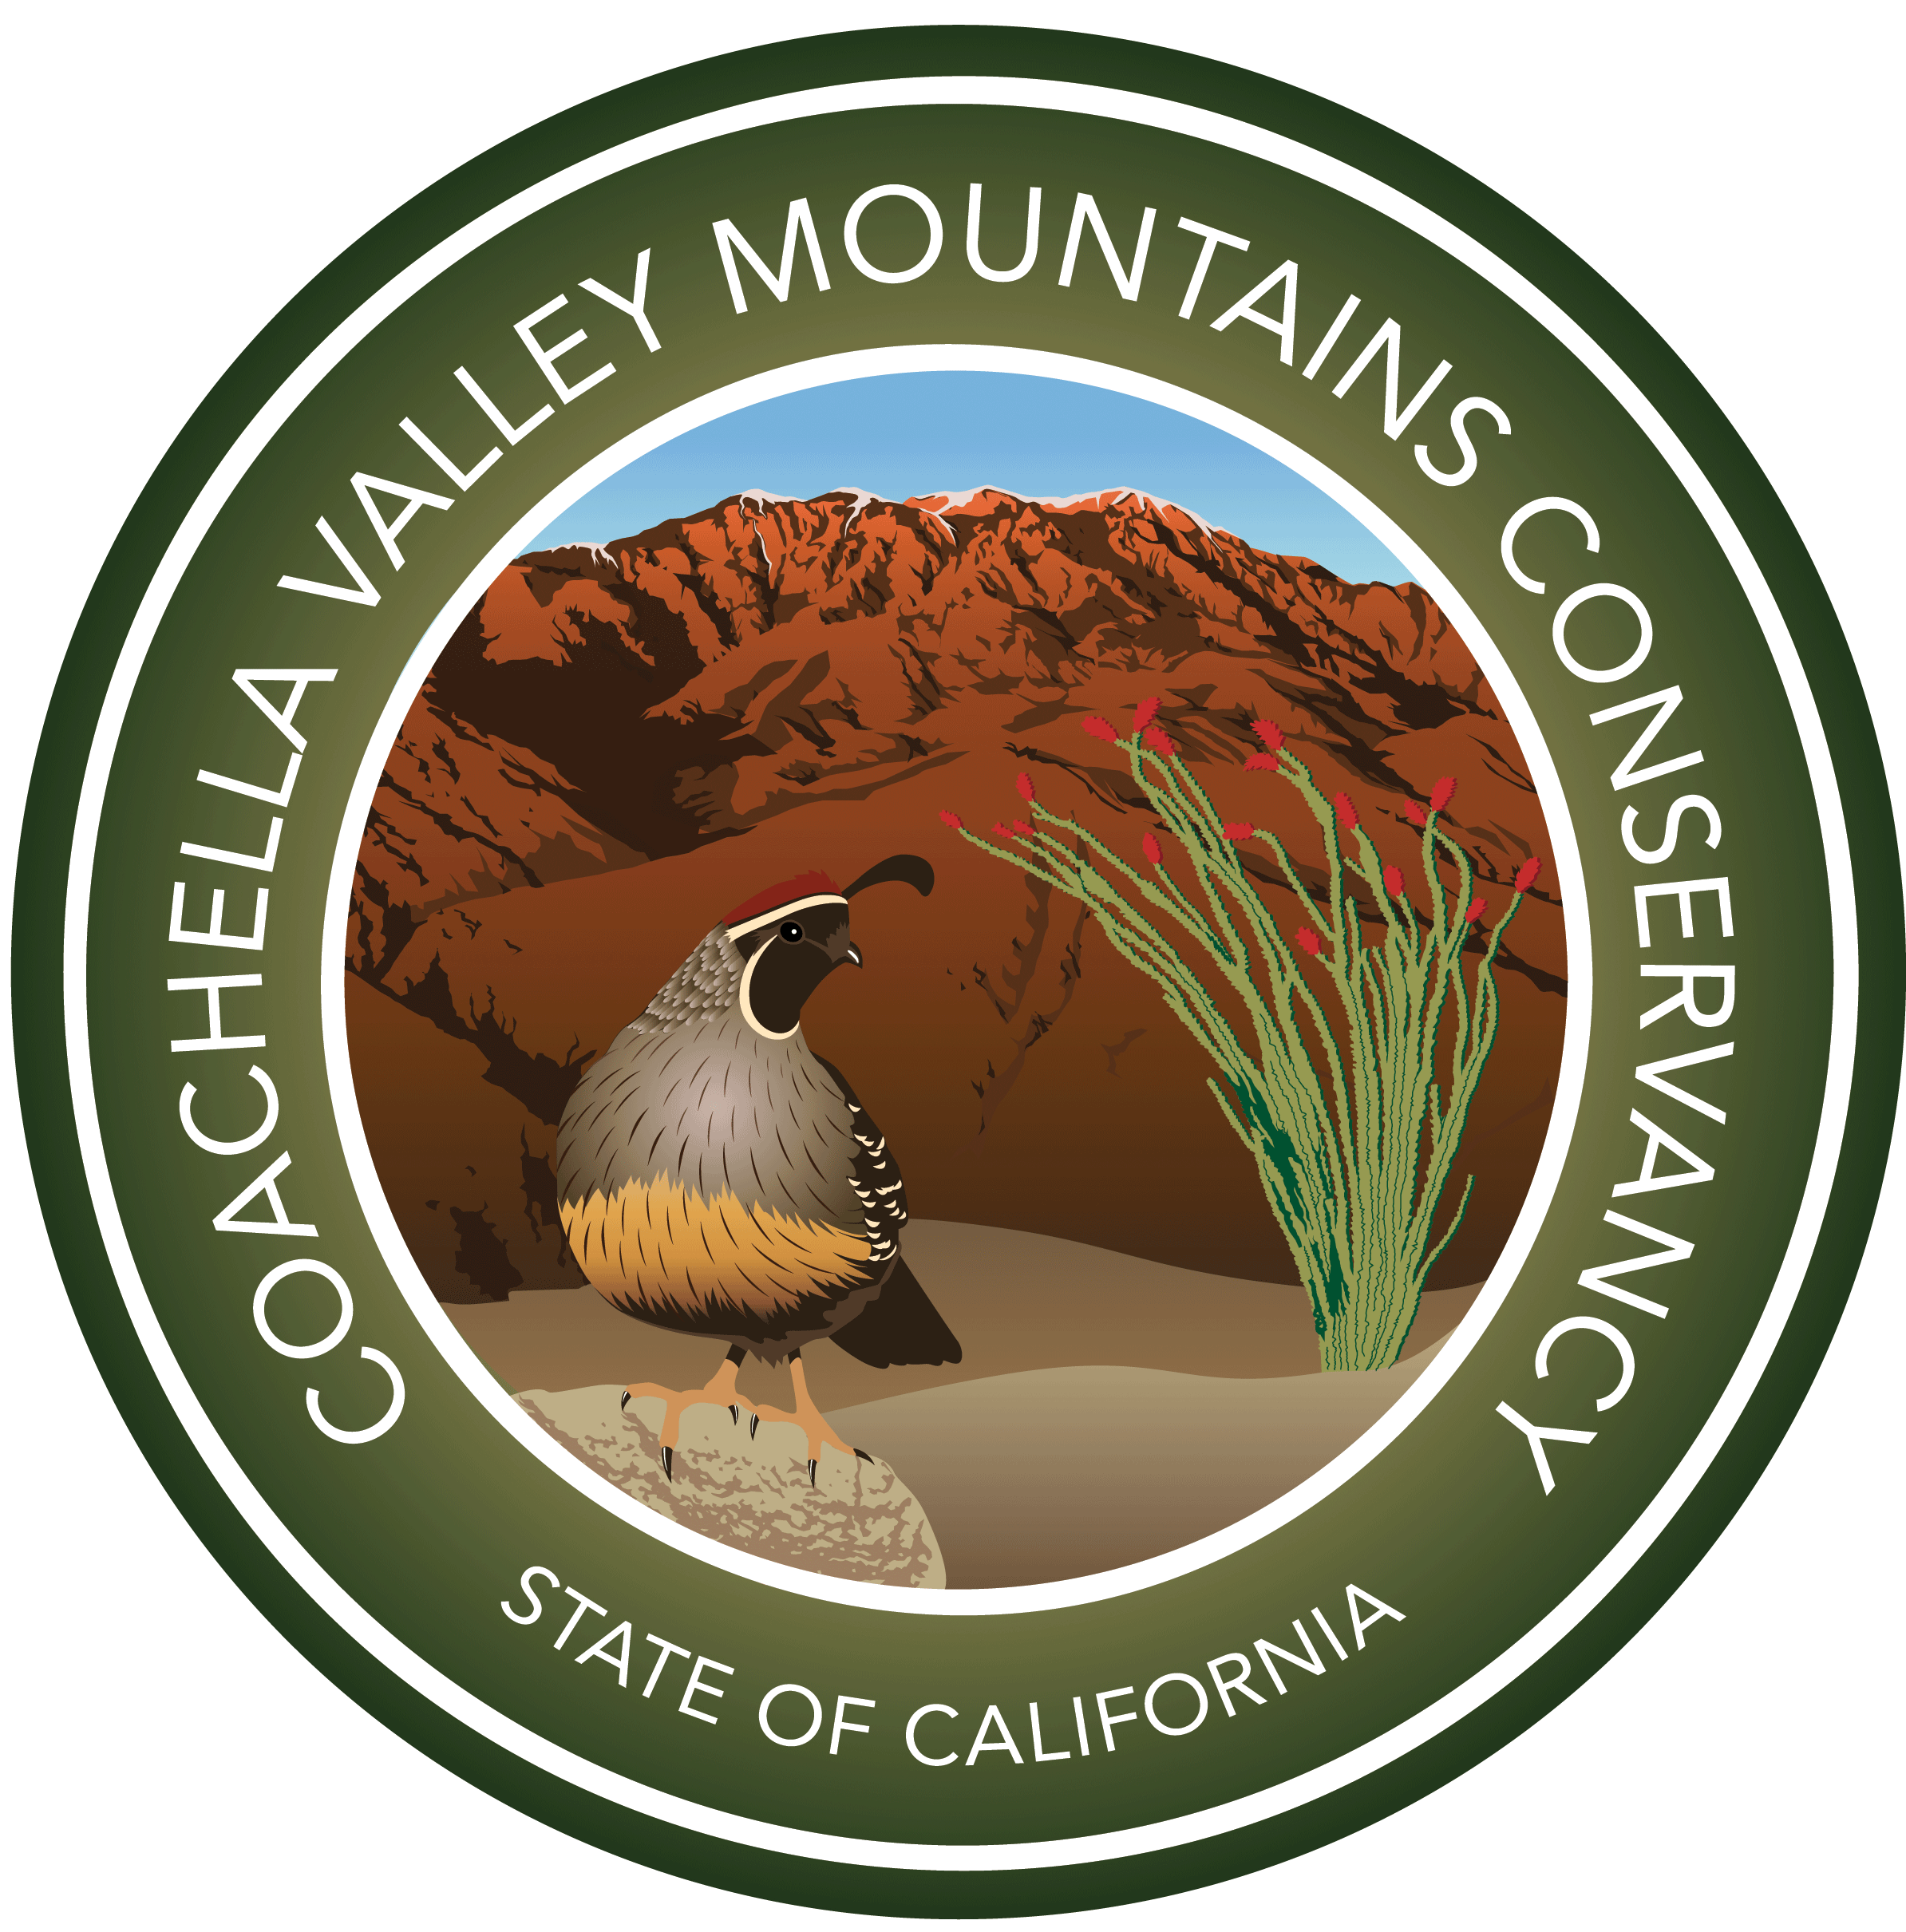 Coachella Valley Mountains Conservancy.png